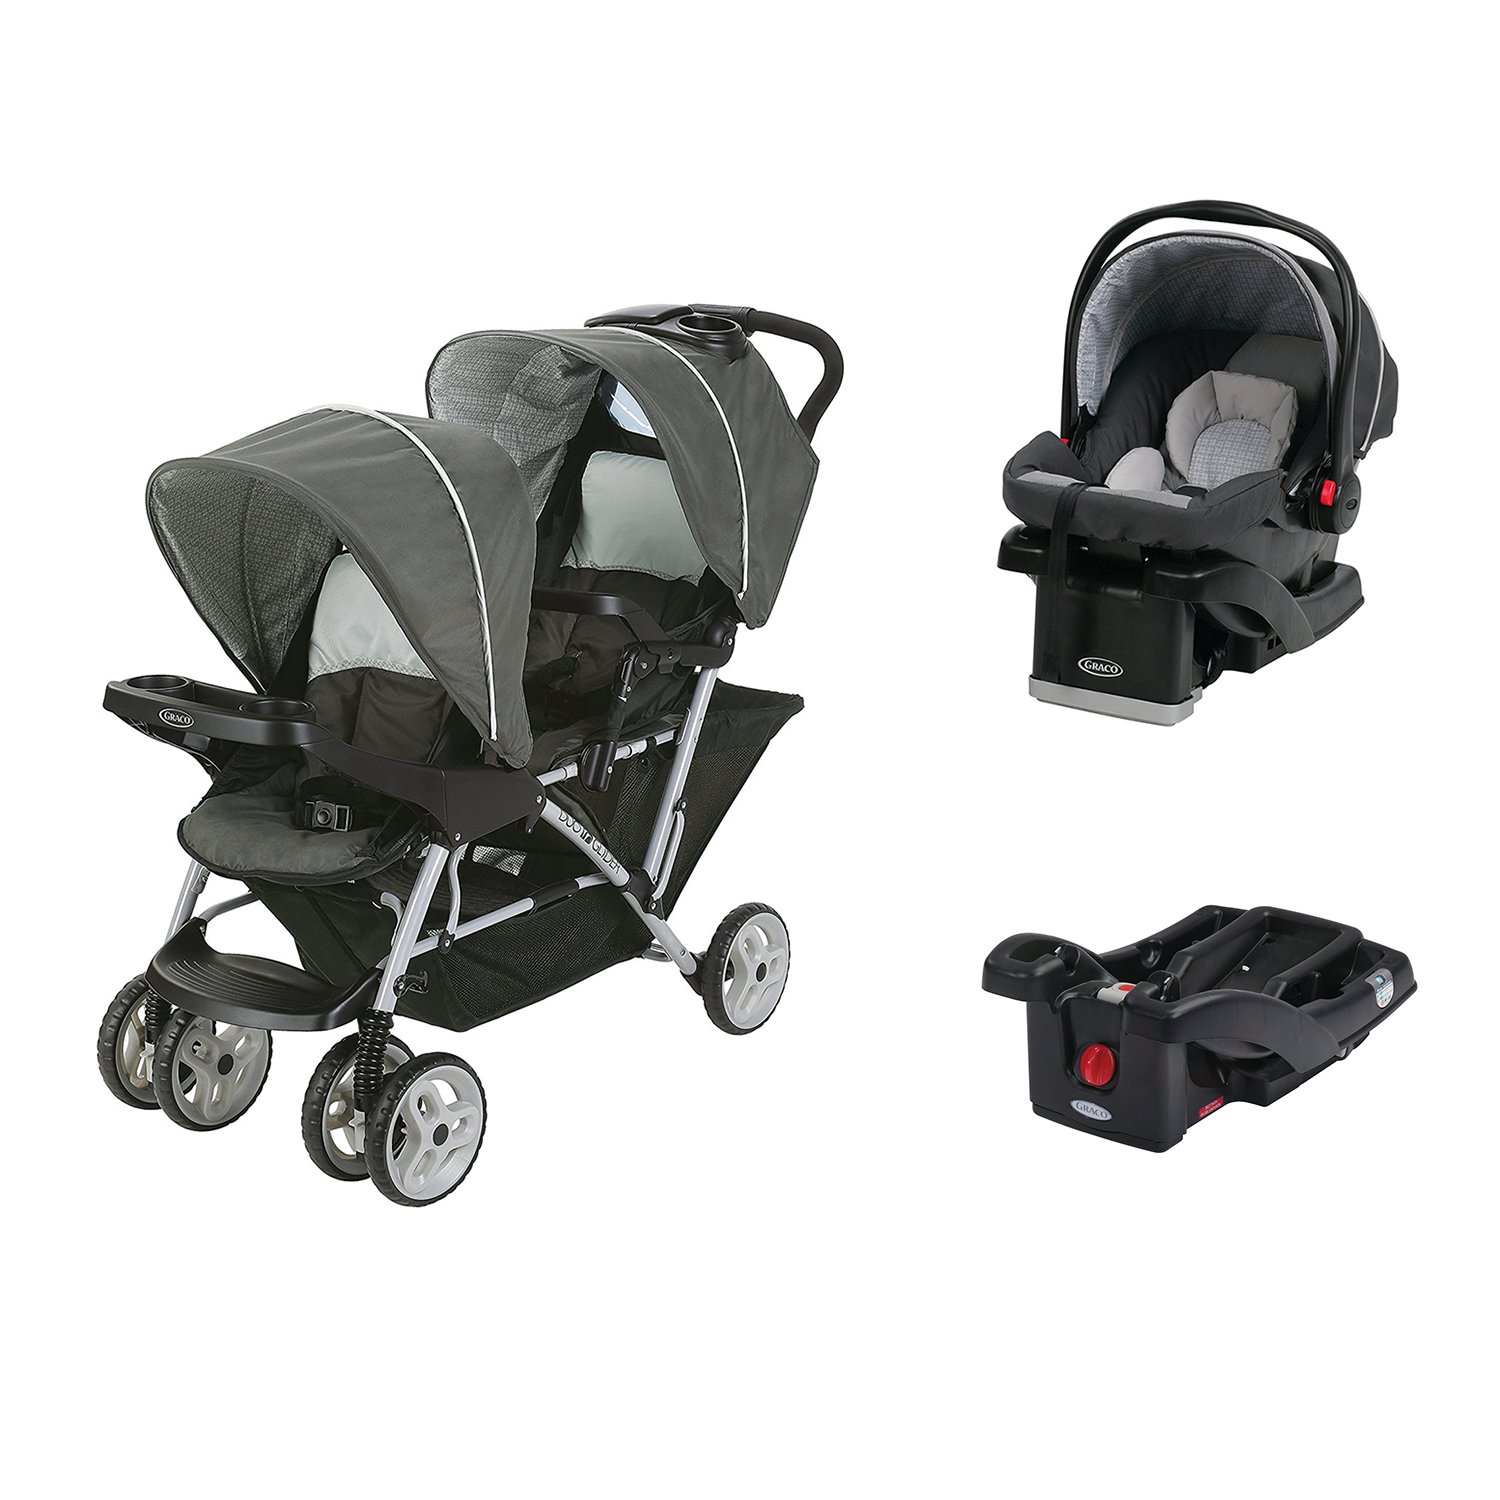 Graco DuoGlider Click Connect Double Stroller + Car Seat & Base Travel System by Graco